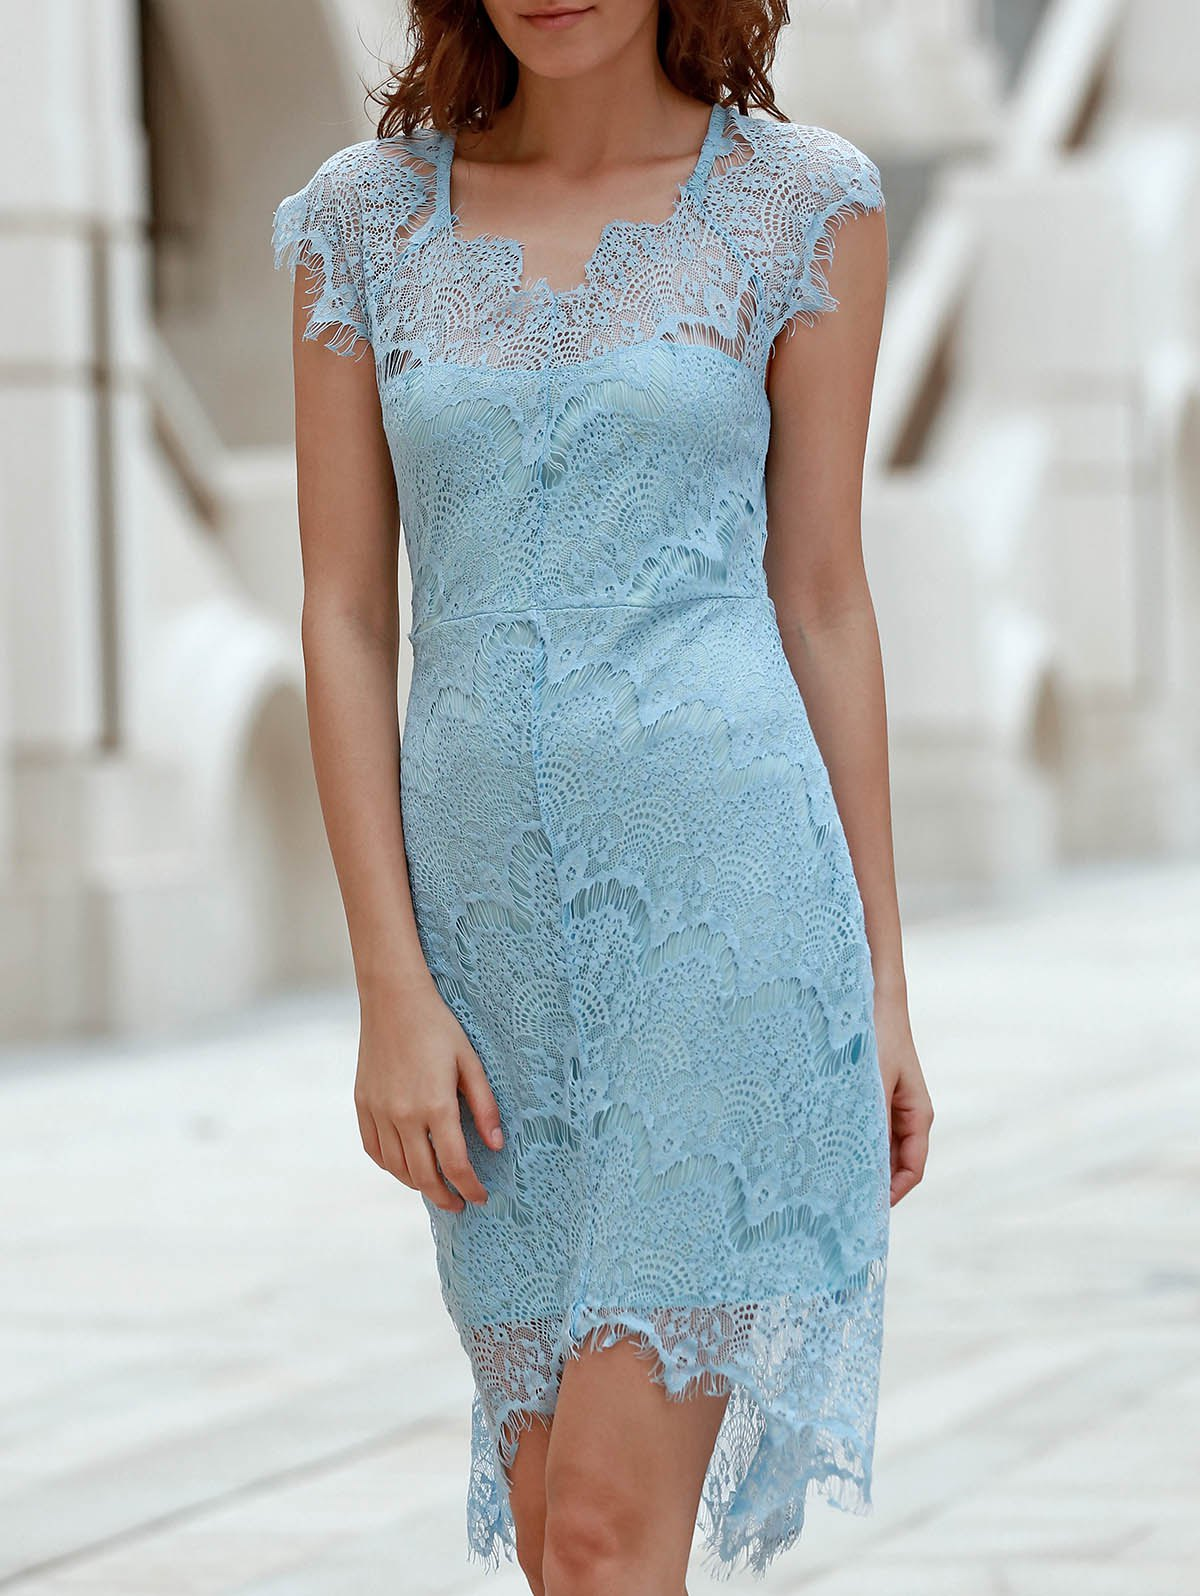 Alluring Sleeveless Scoop Neck Cut Out Women's Lace Dress - LIGHT BLUE S